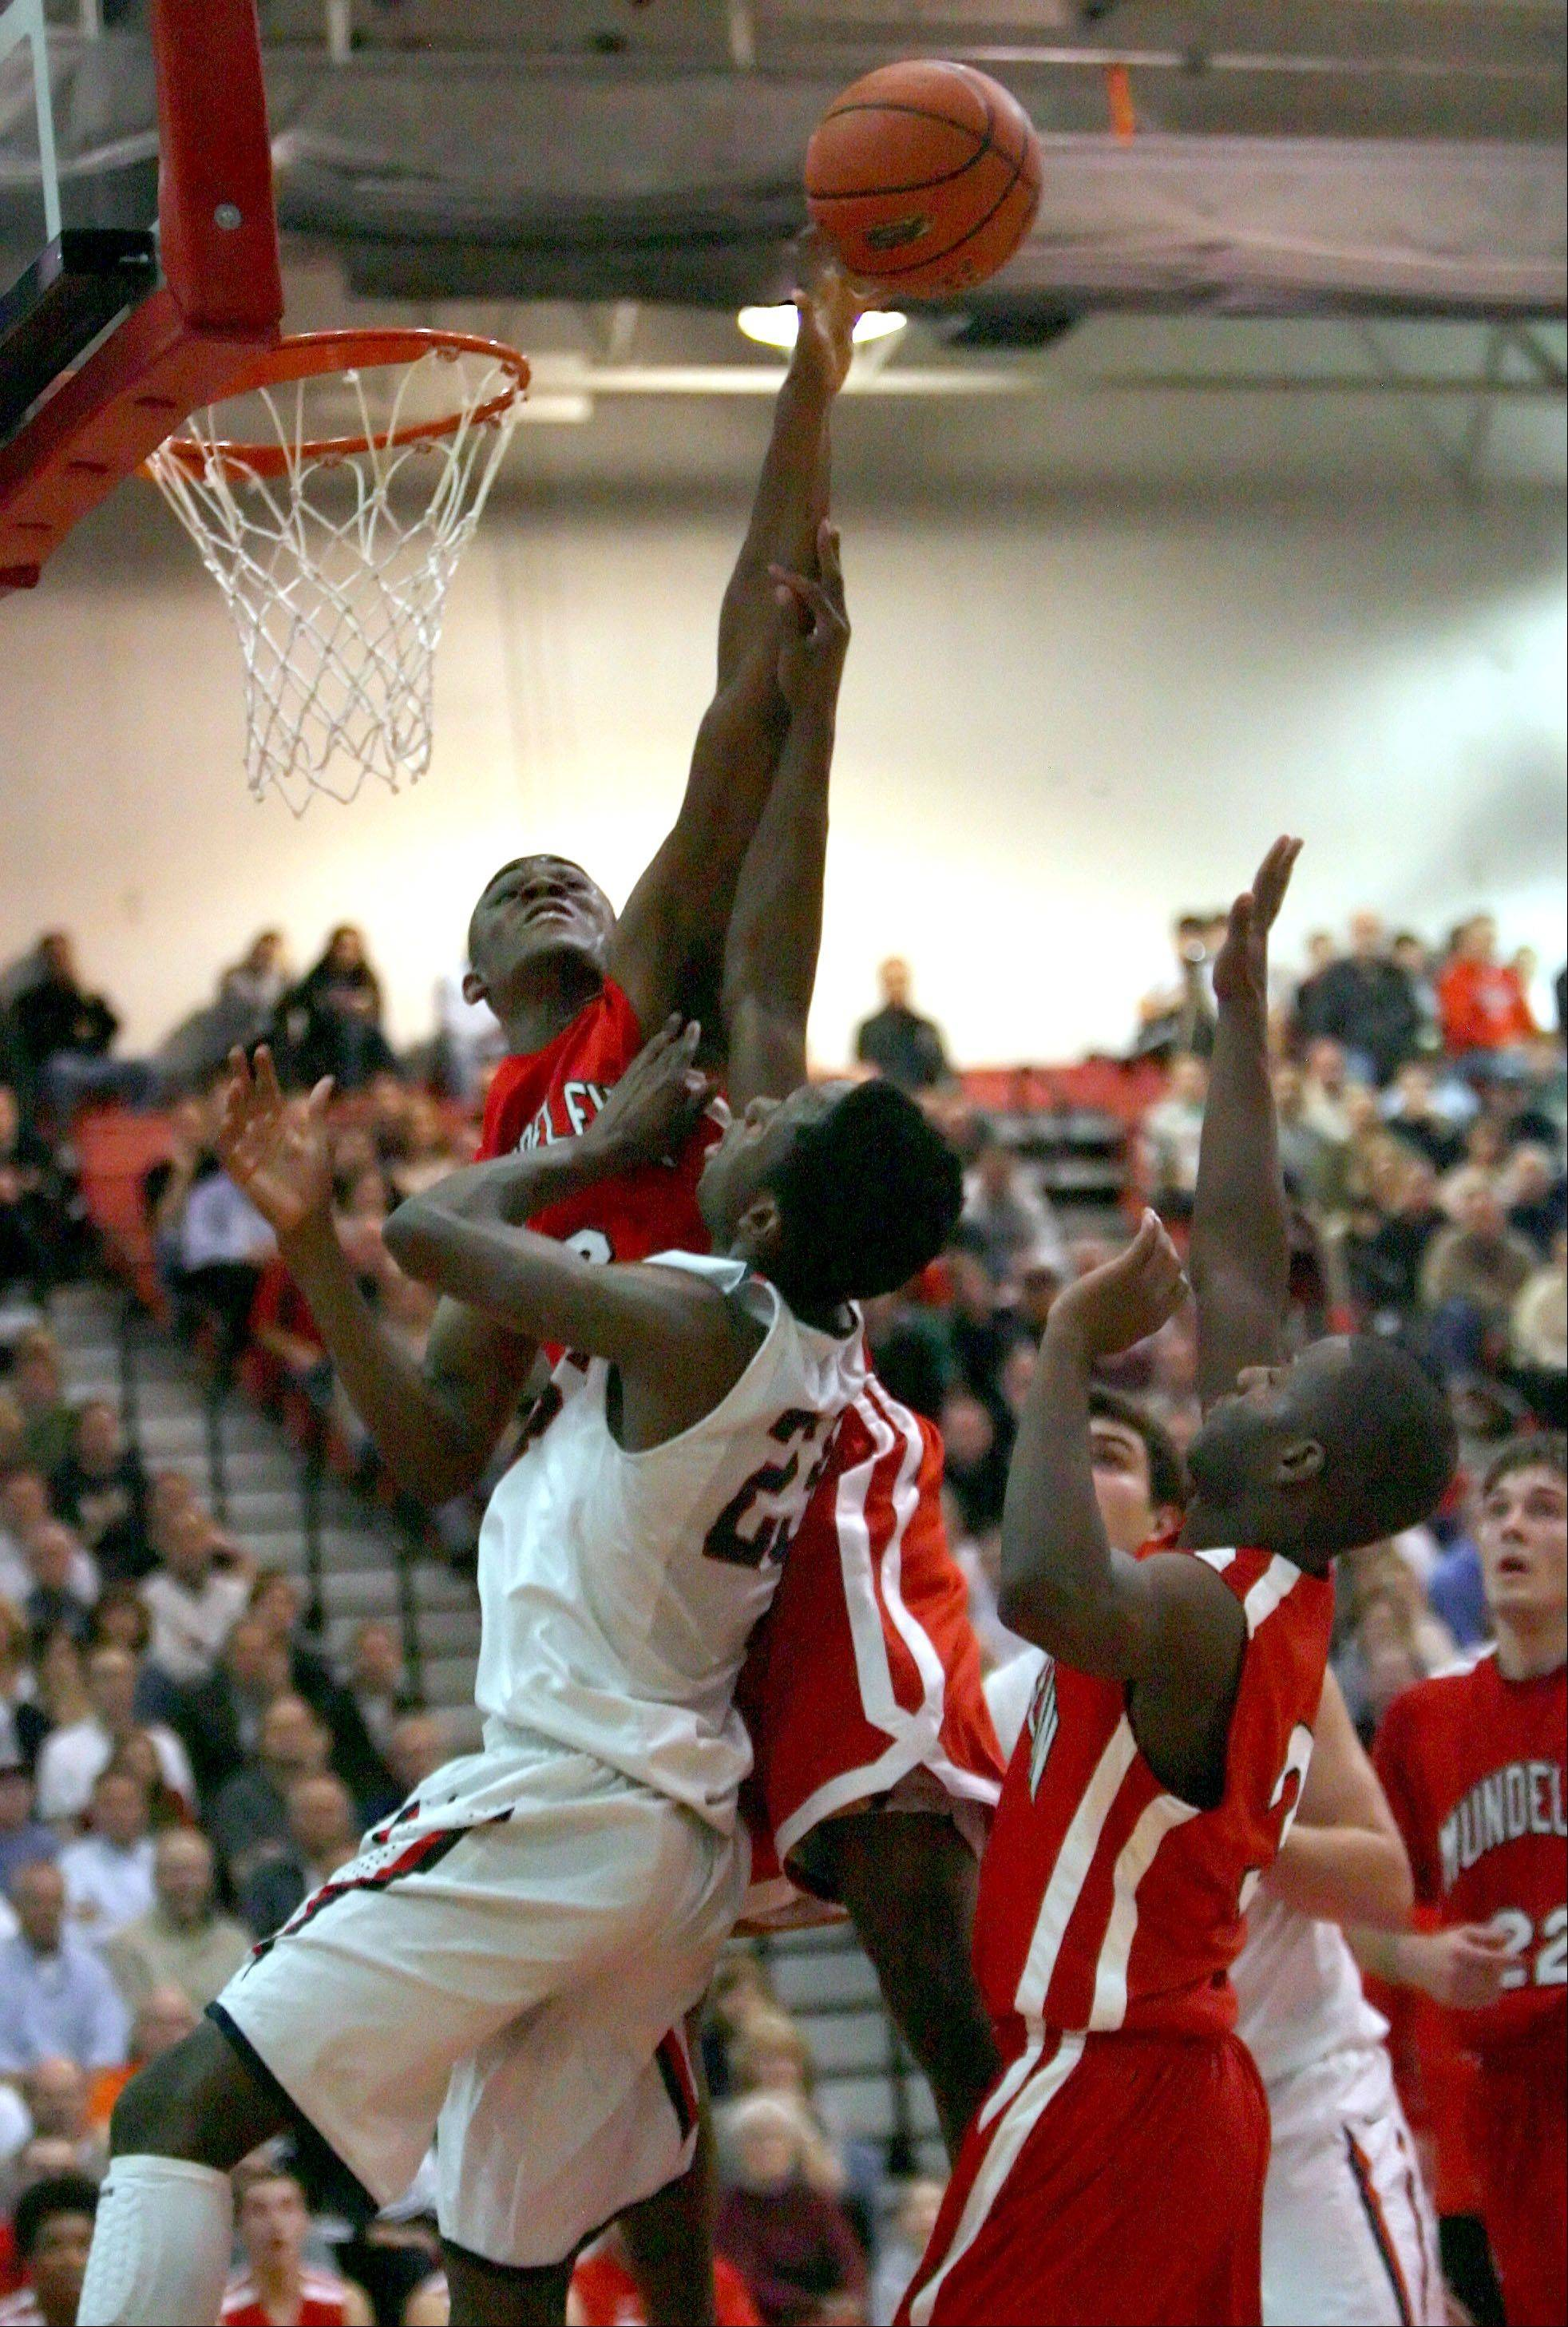 Images from the Mundelein vs. St. Viator boys basketball game on Wednesday, March 7 in Barrington.